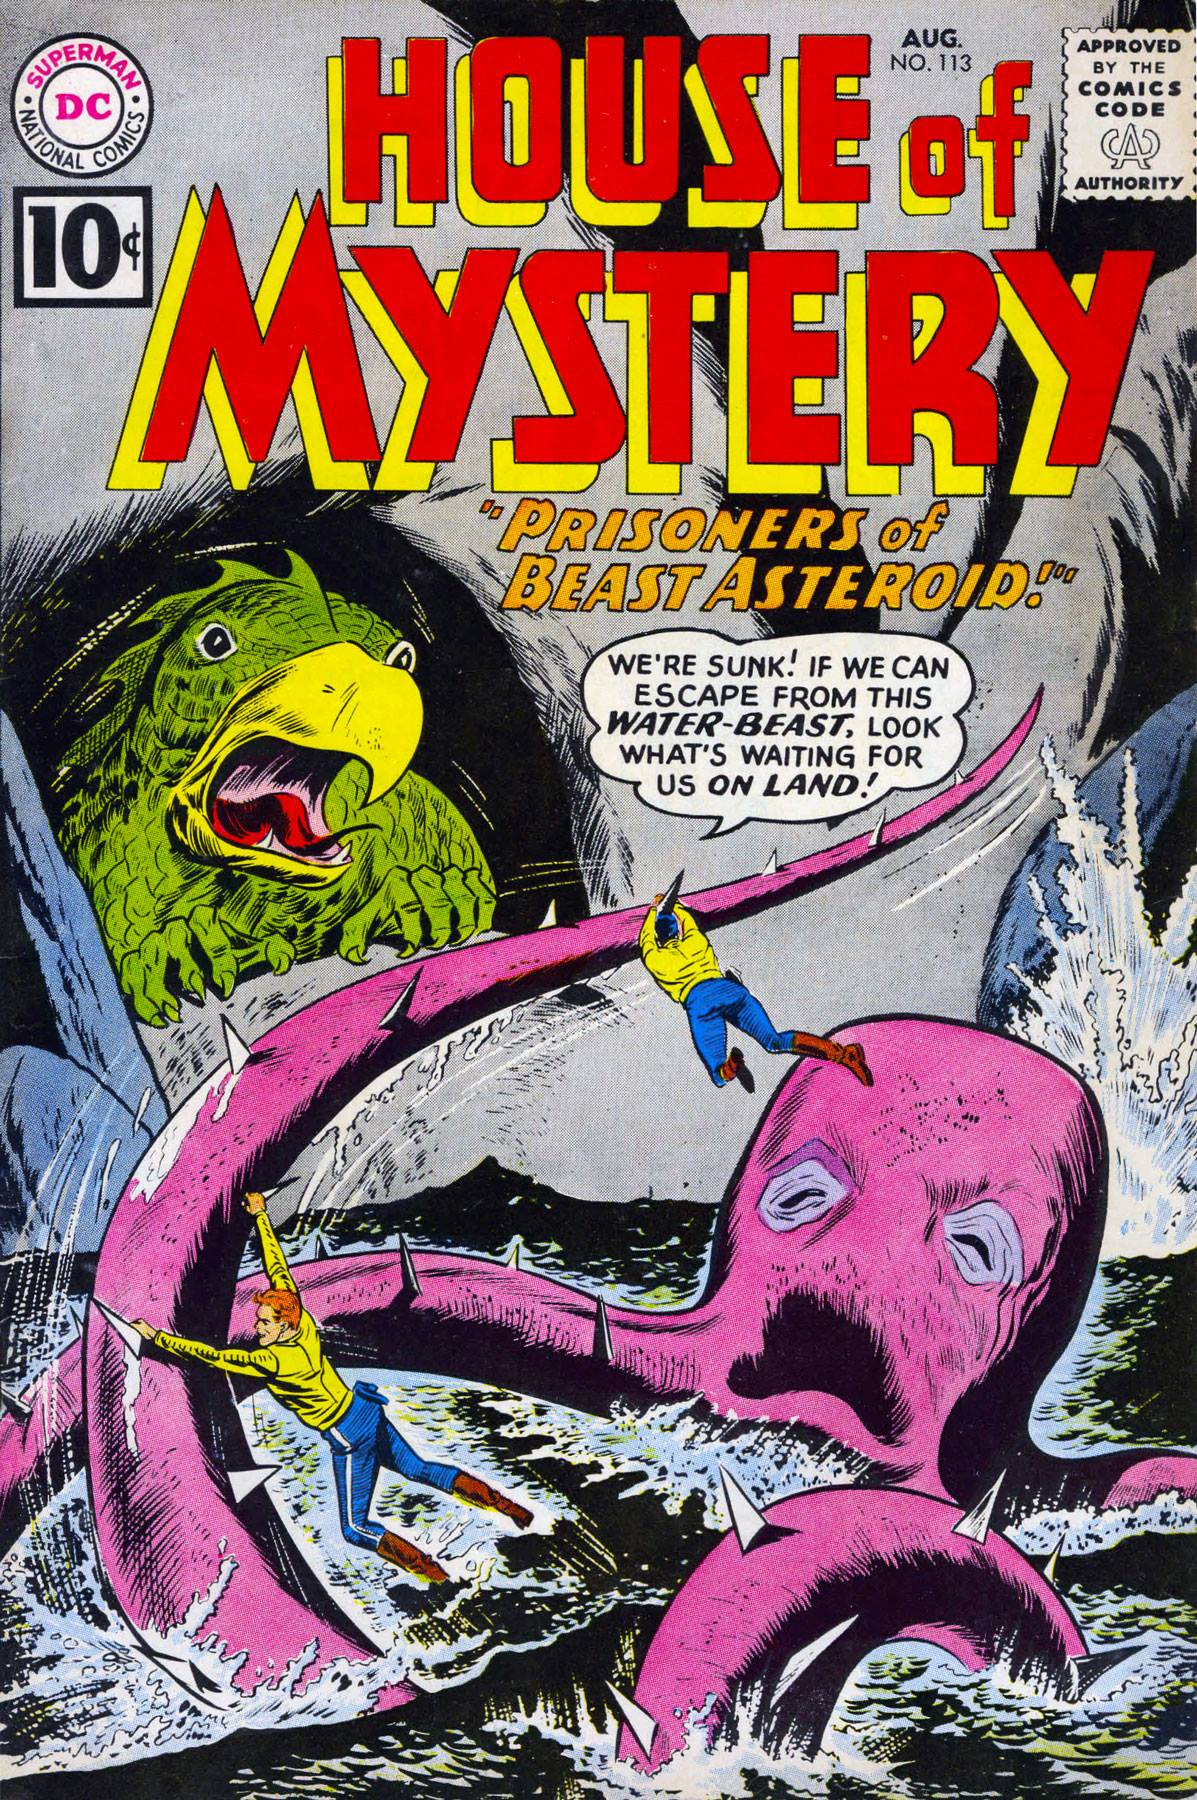 HouseofMystery113